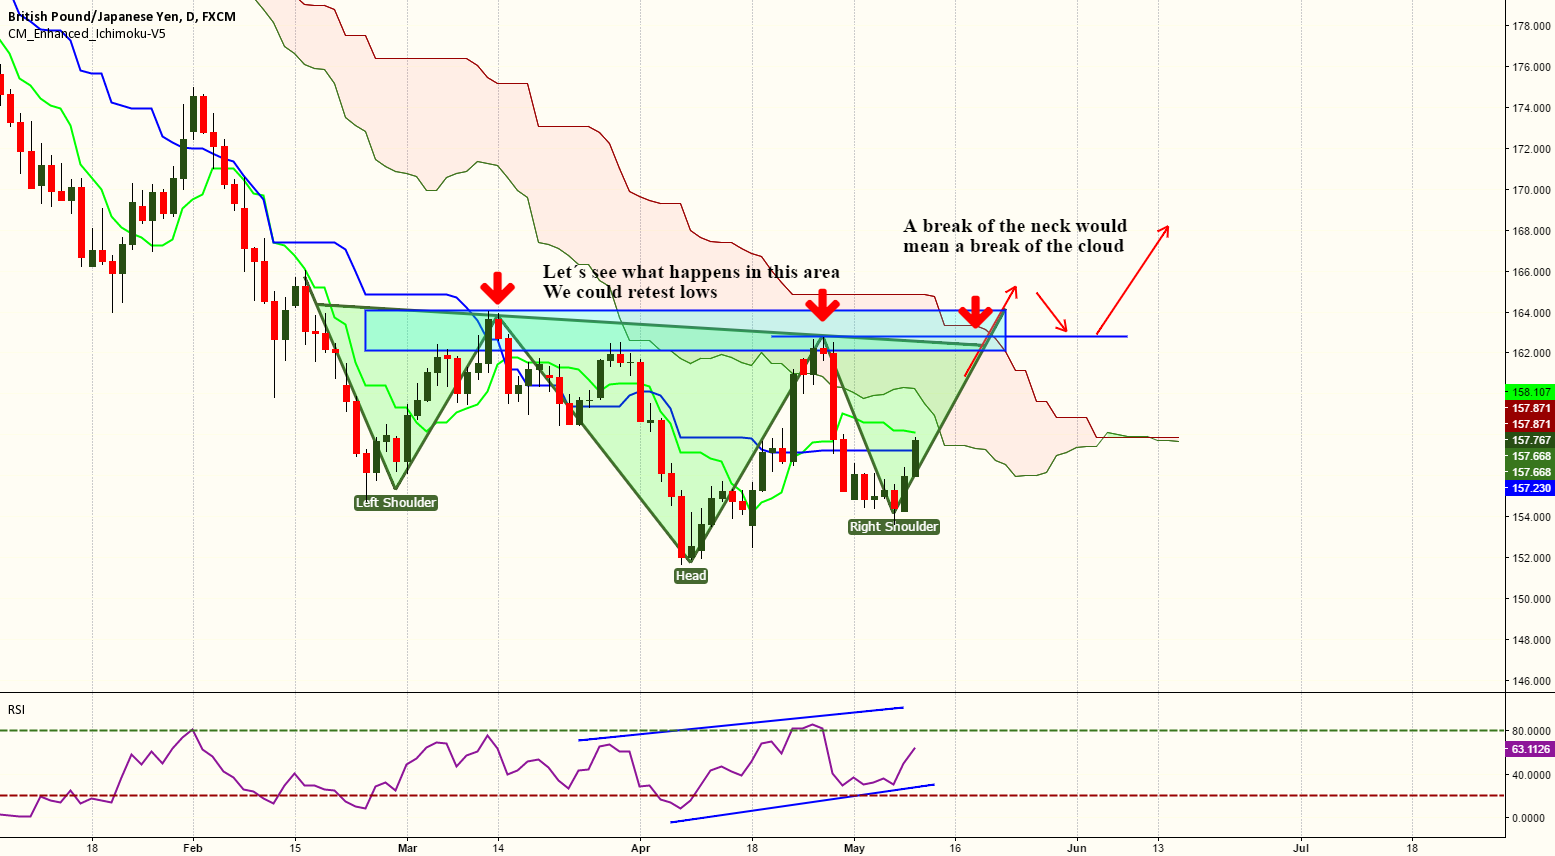 GBPJPY - Potential inversed H&S